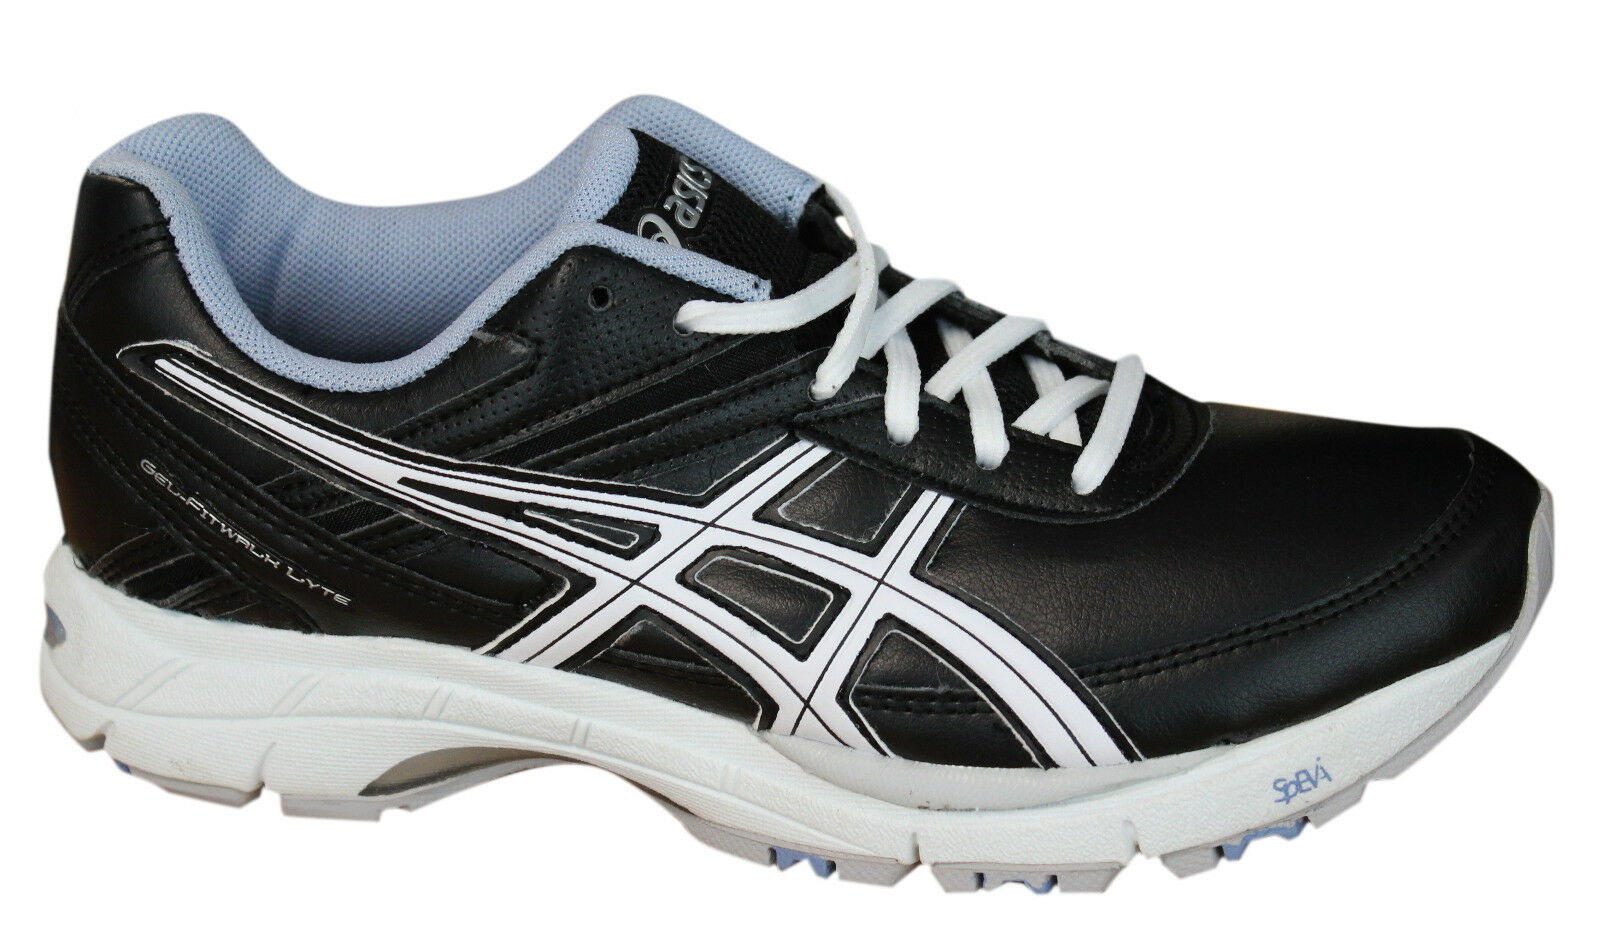 Asics Womens Gel Fitwalk Lyte Sports Outdoor Trainers shoes Black Q156Y 9047 D2